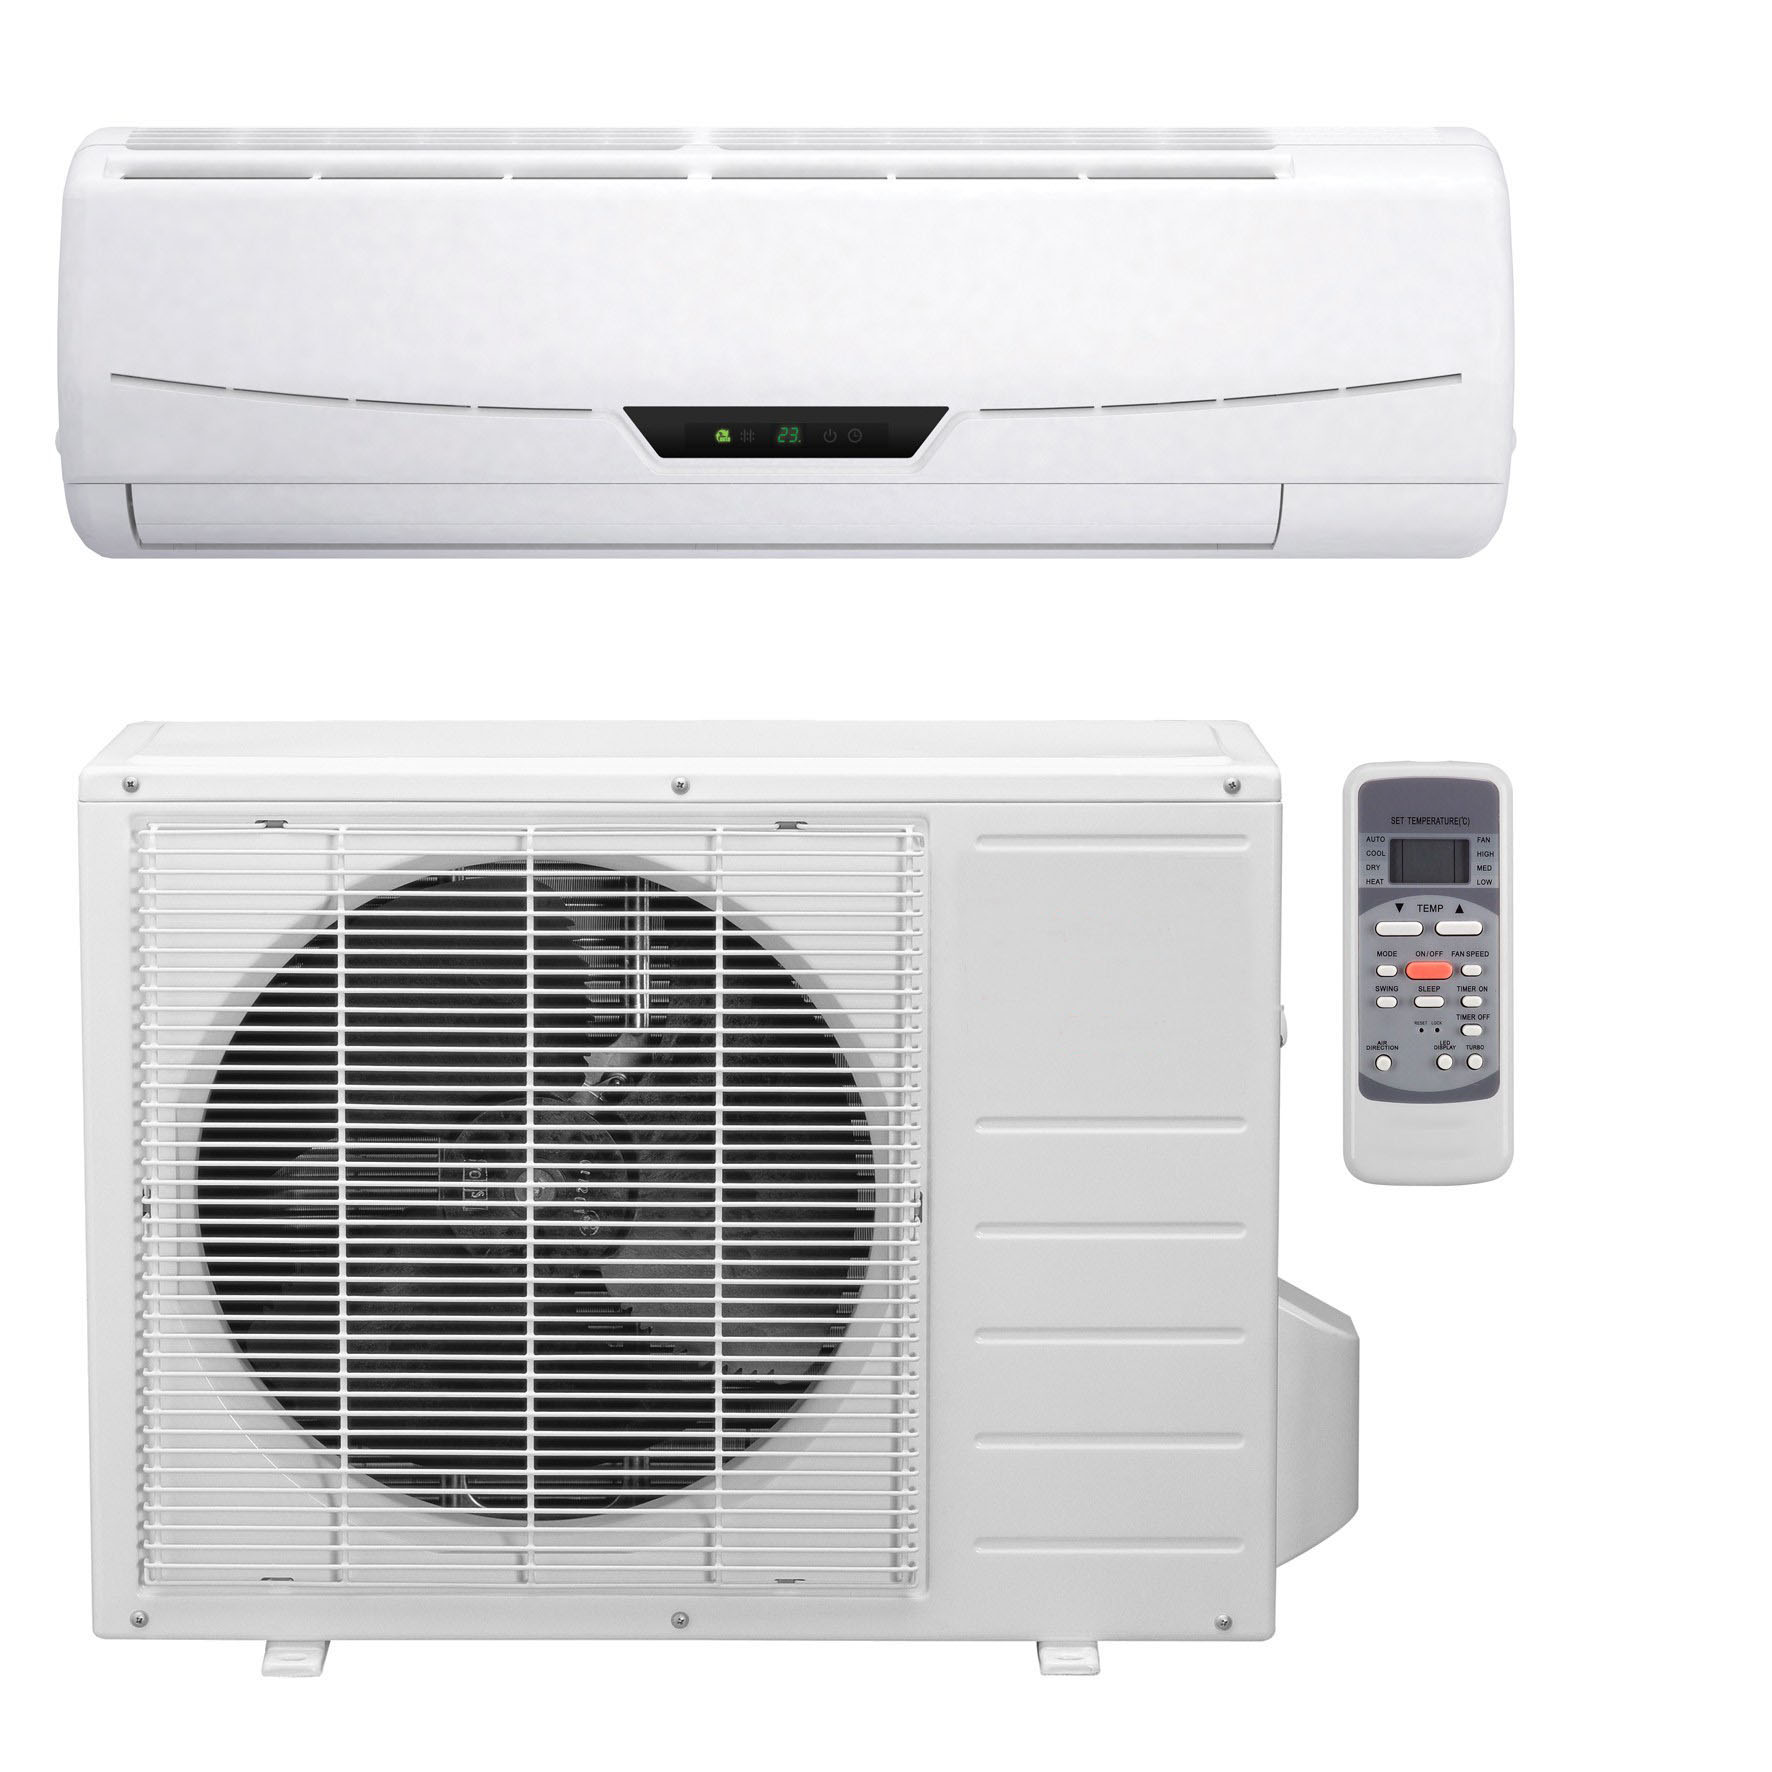 Super September new designs Electric &amp; solar hybrid split acdc conditioner <strong>ac</strong> dc power air conditioners make room cooling